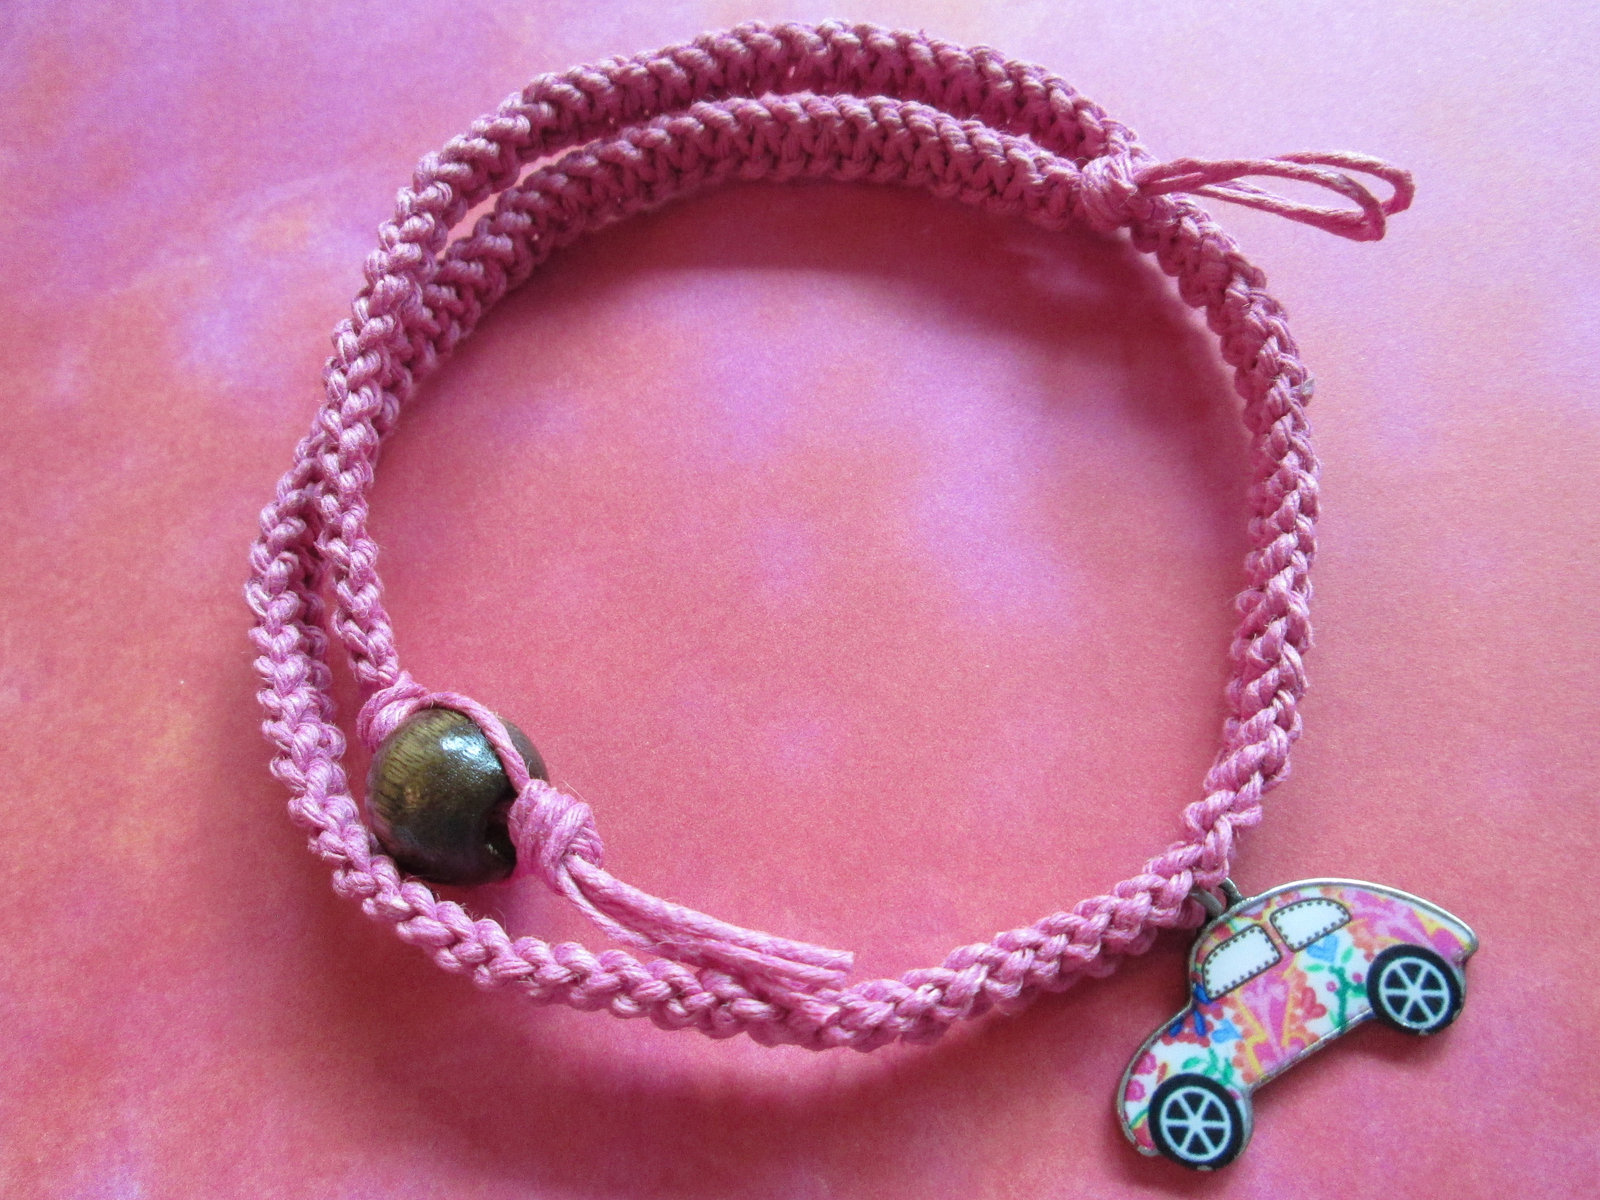 Handmade Pink Hemp Necklace with Awesome Flowery Colorful Car Charm Pendant